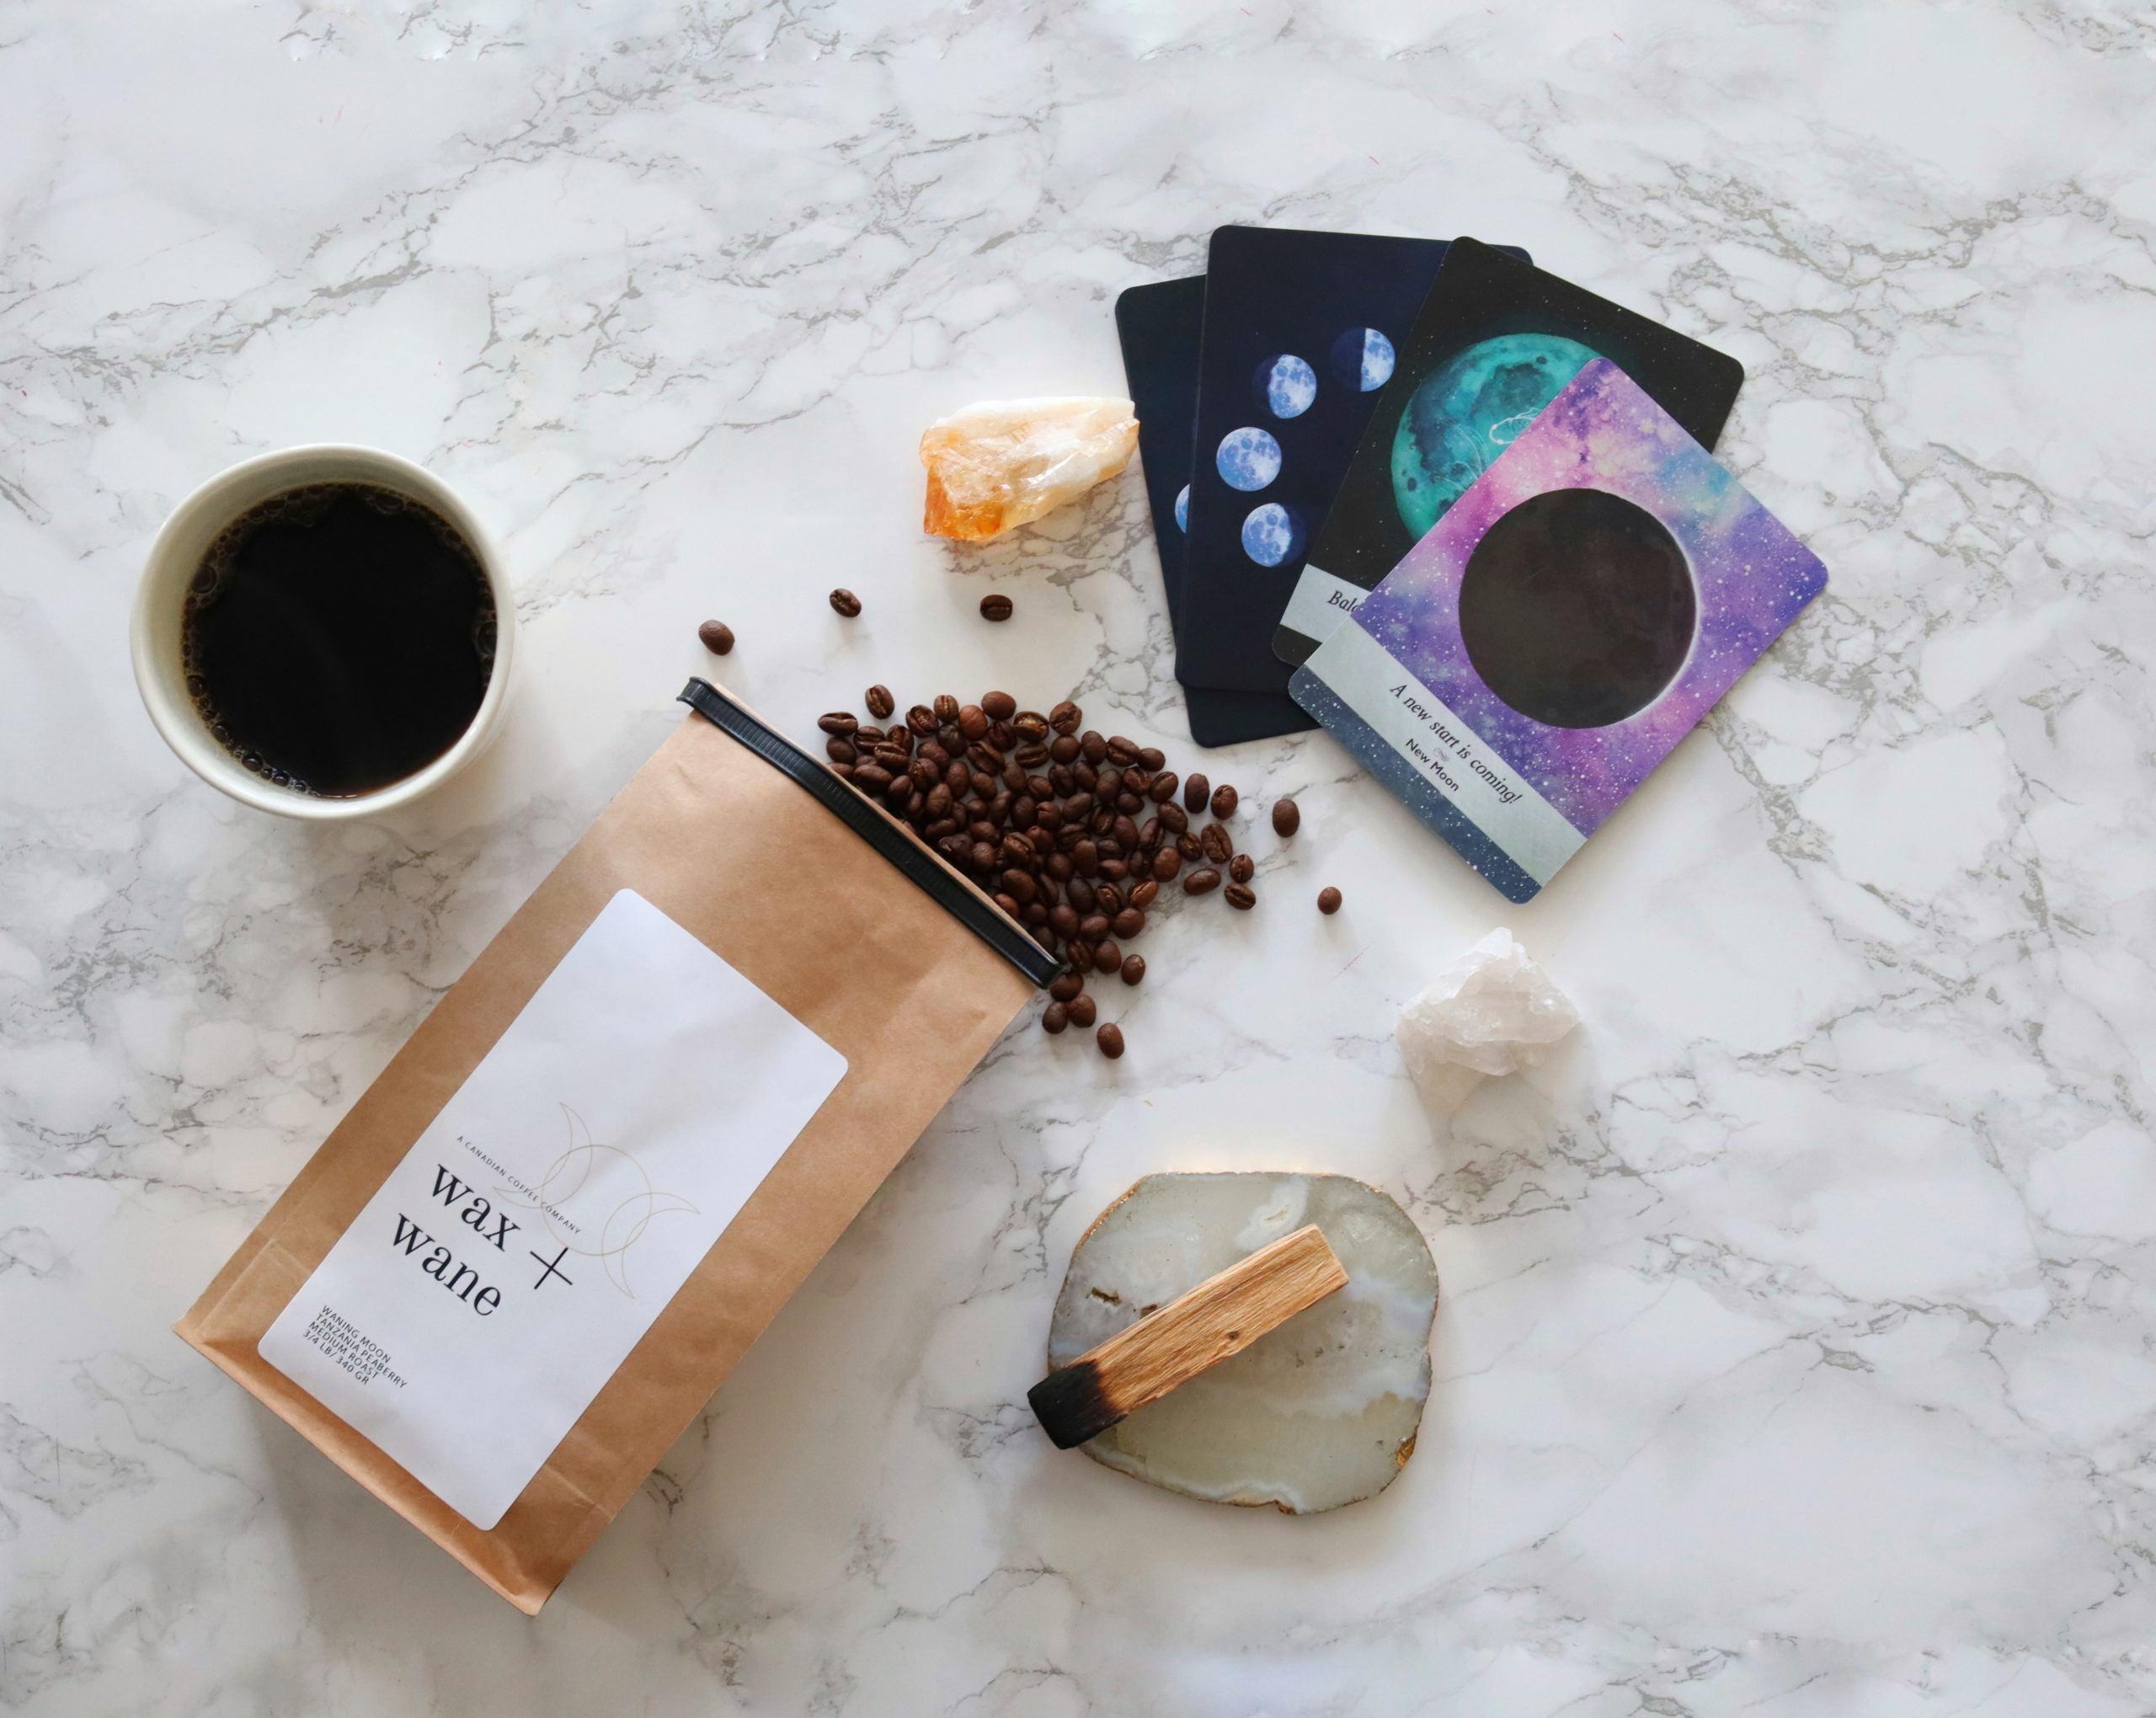 wax and wane coffee beans buy online Canada